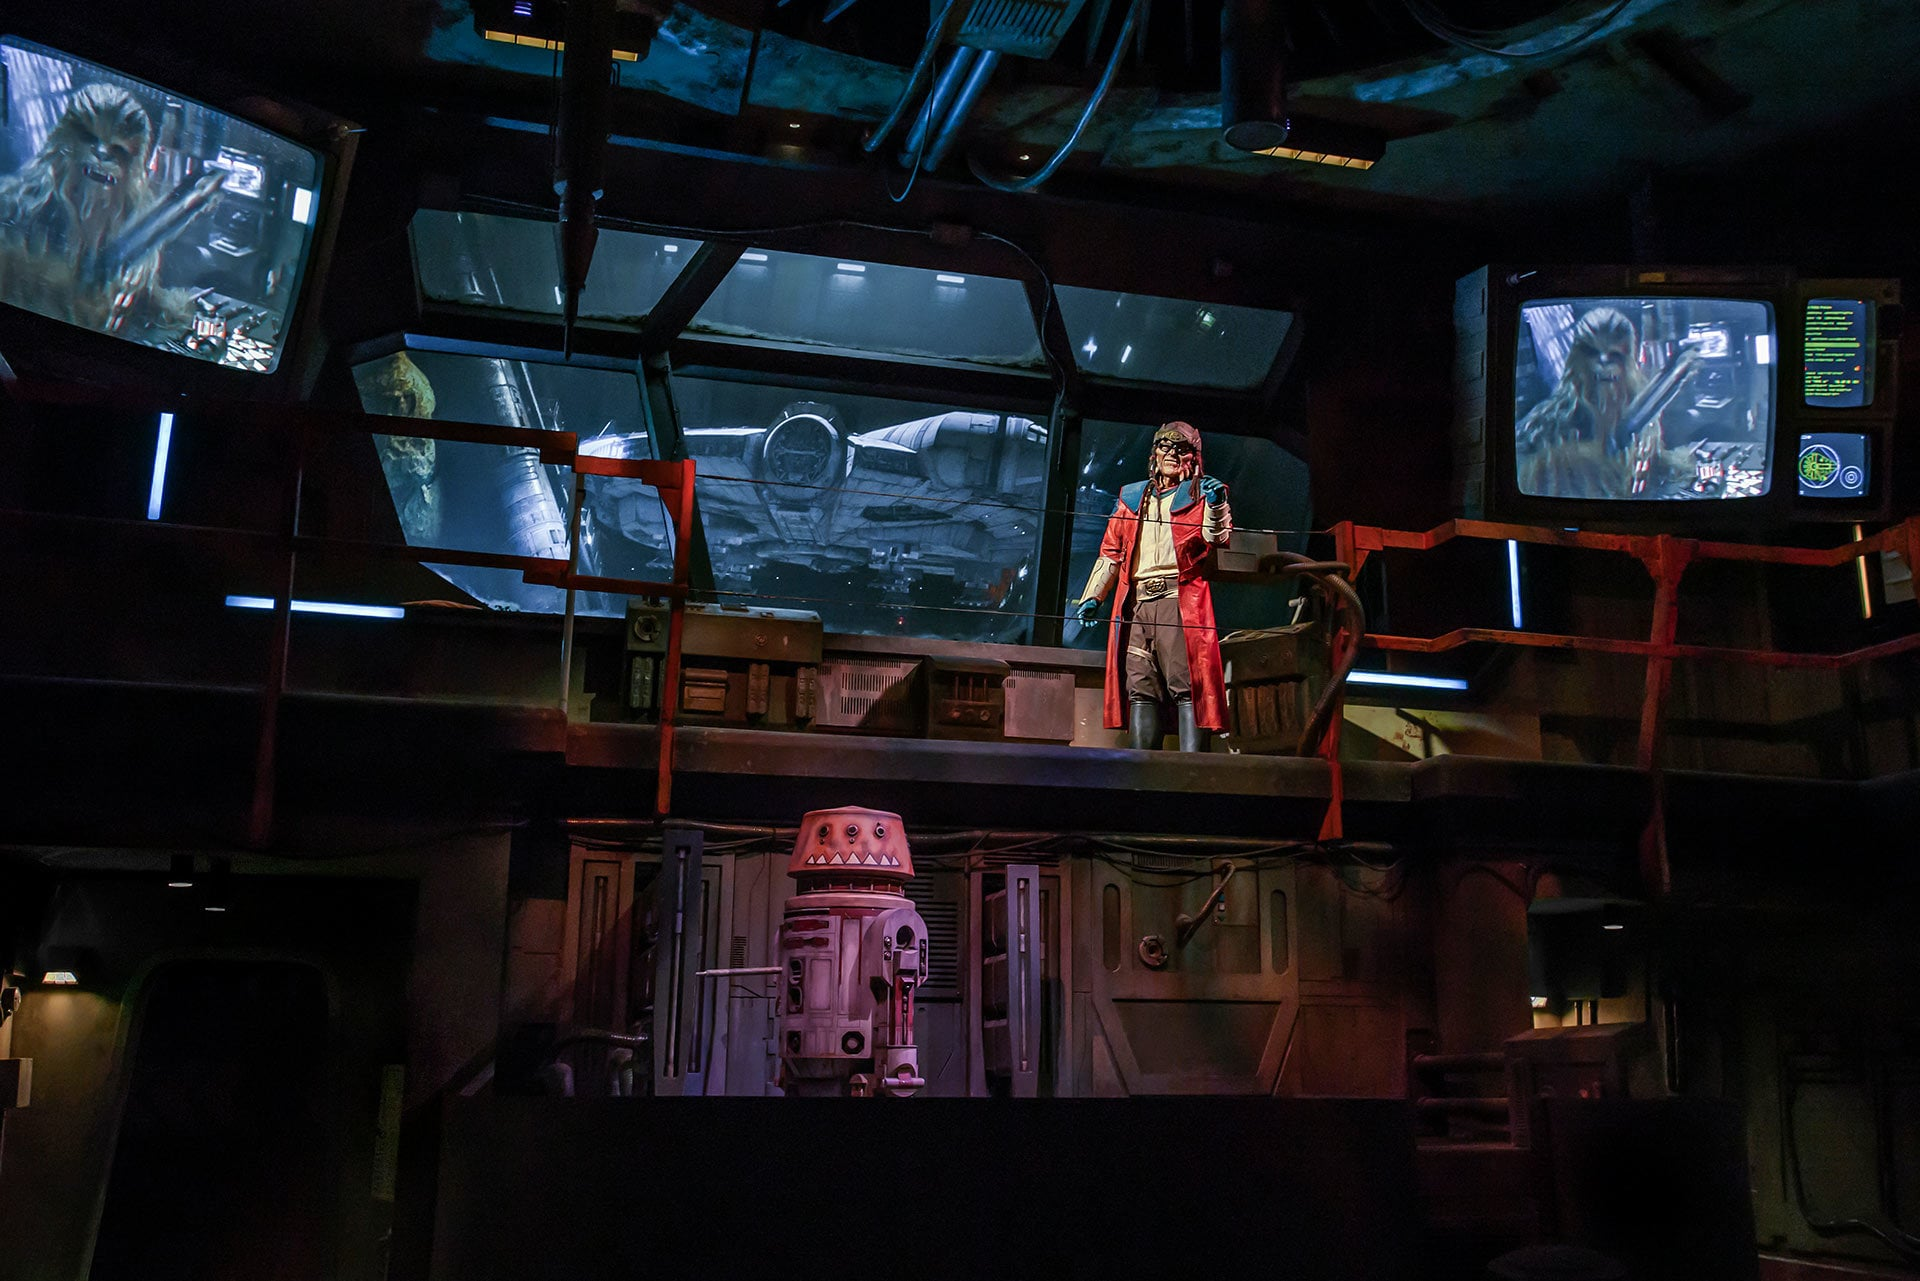 The notorious Weequay pirate, Hondo Ohnaka, gives guests their mission prior to boarding Millennium Falcon: Smugglers Run.